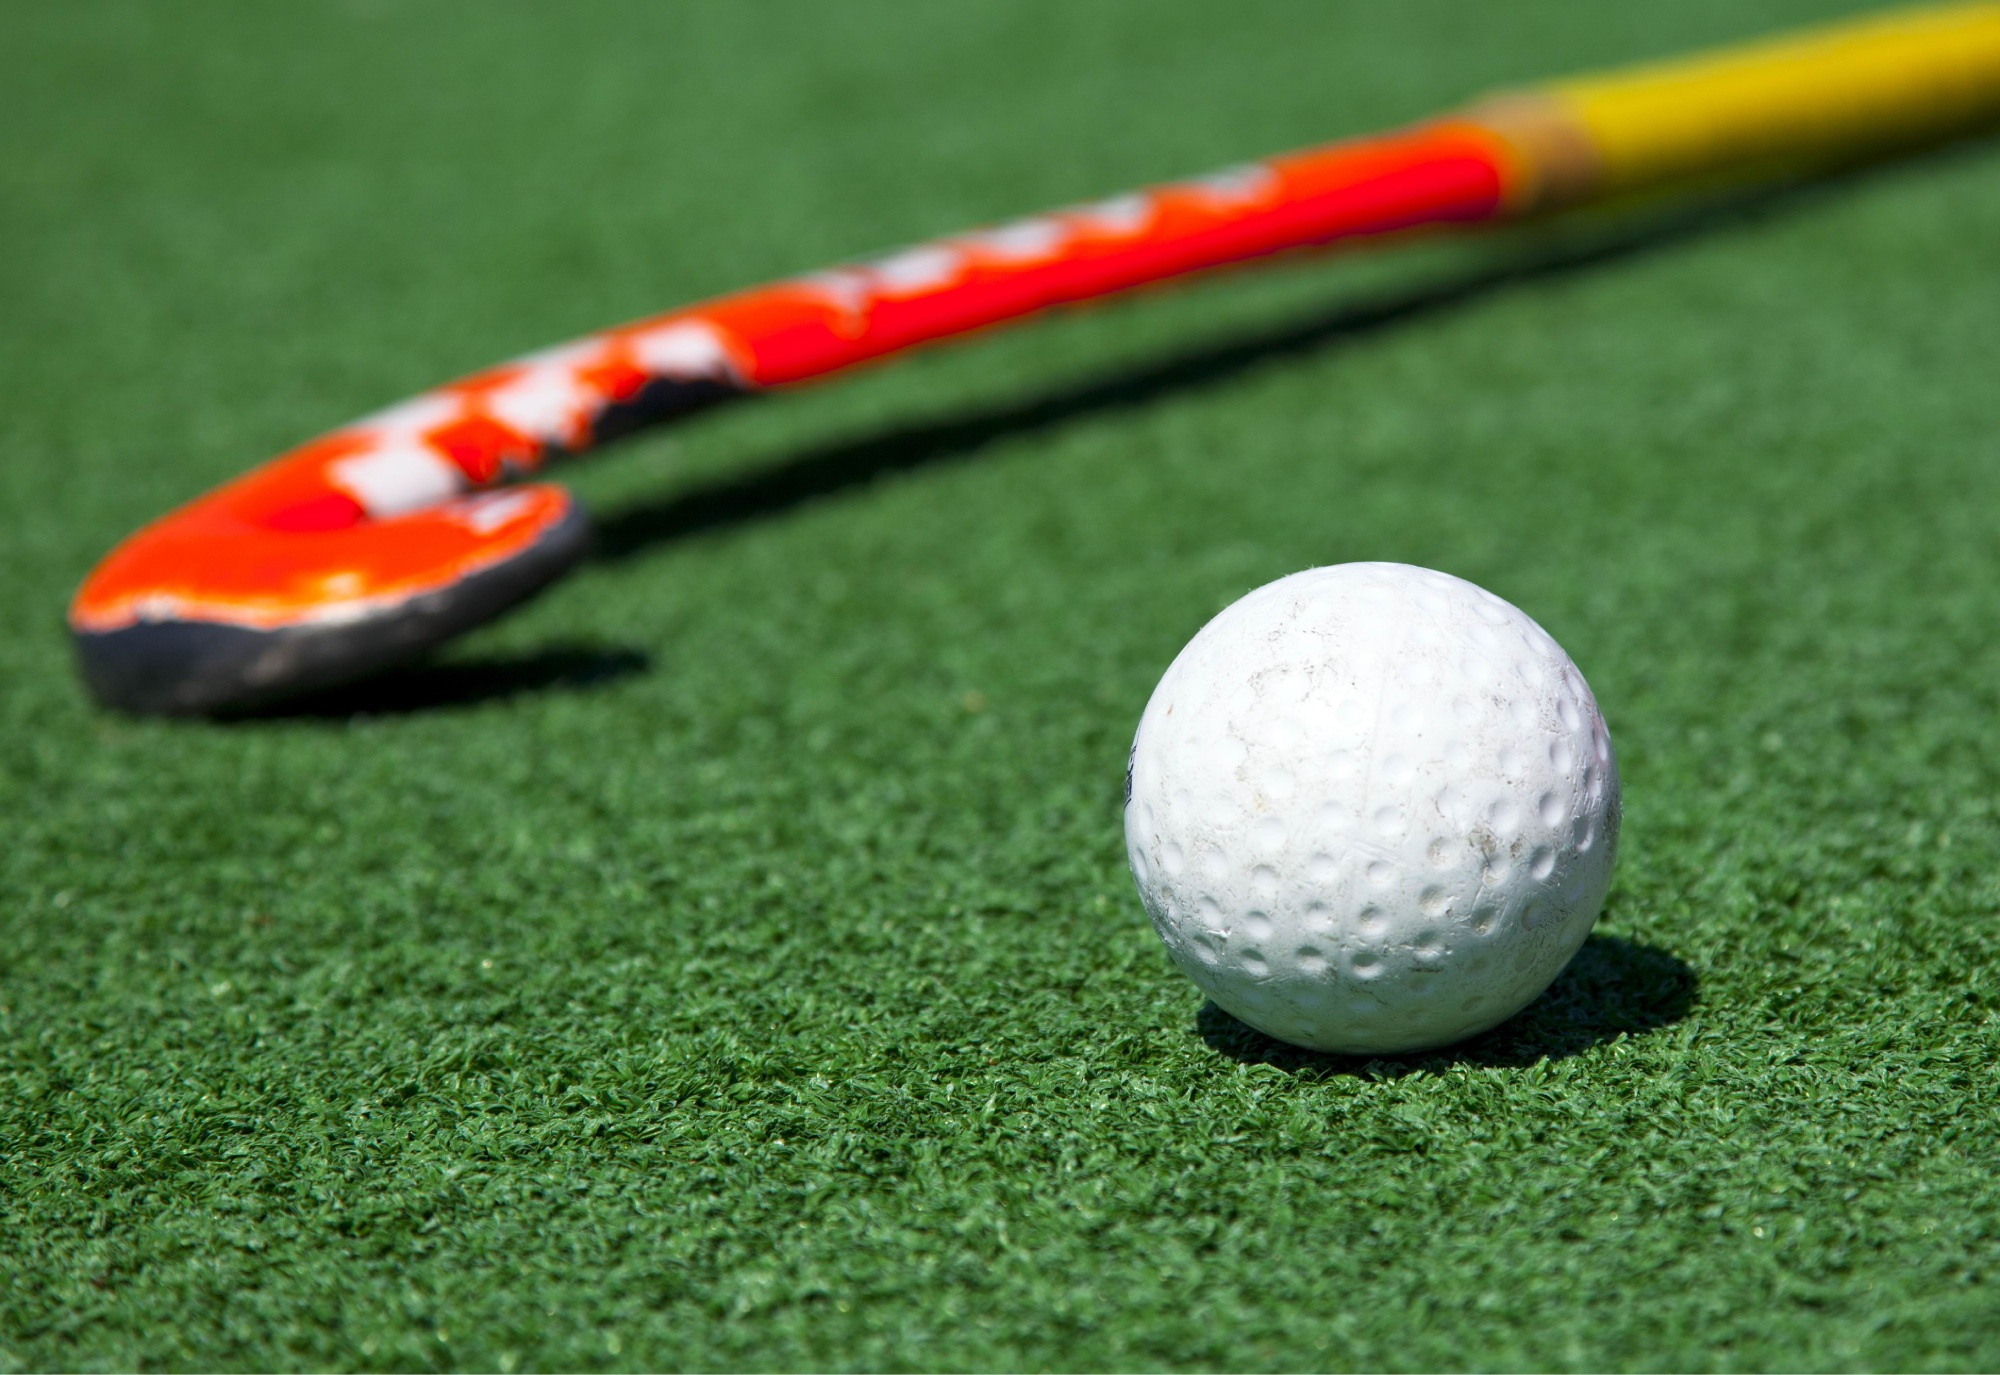 Hockey: Melville City pulls off upset win over Old Aquinians